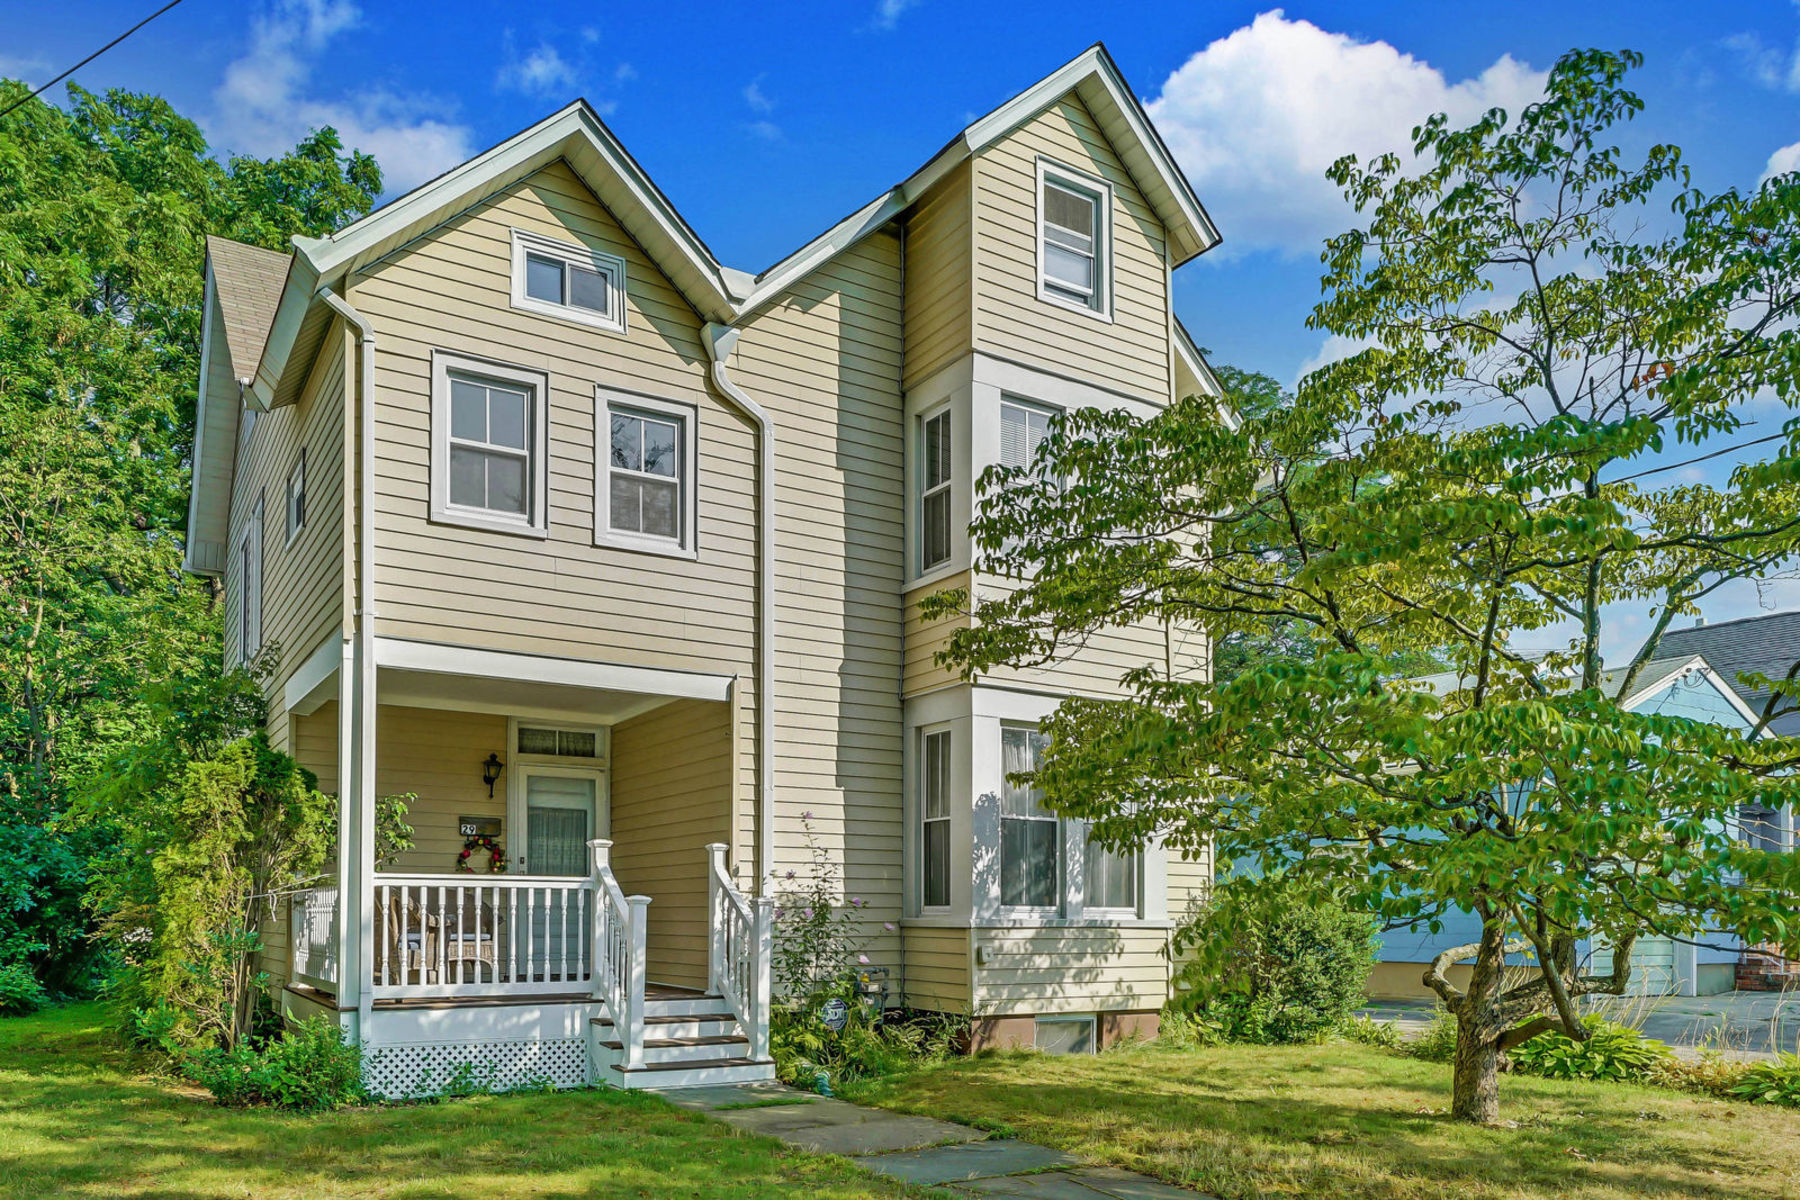 Single Family Home for Sale at Manasquan Charmer 29 Pearce Avenue, Manasquan, New Jersey 08736 United States